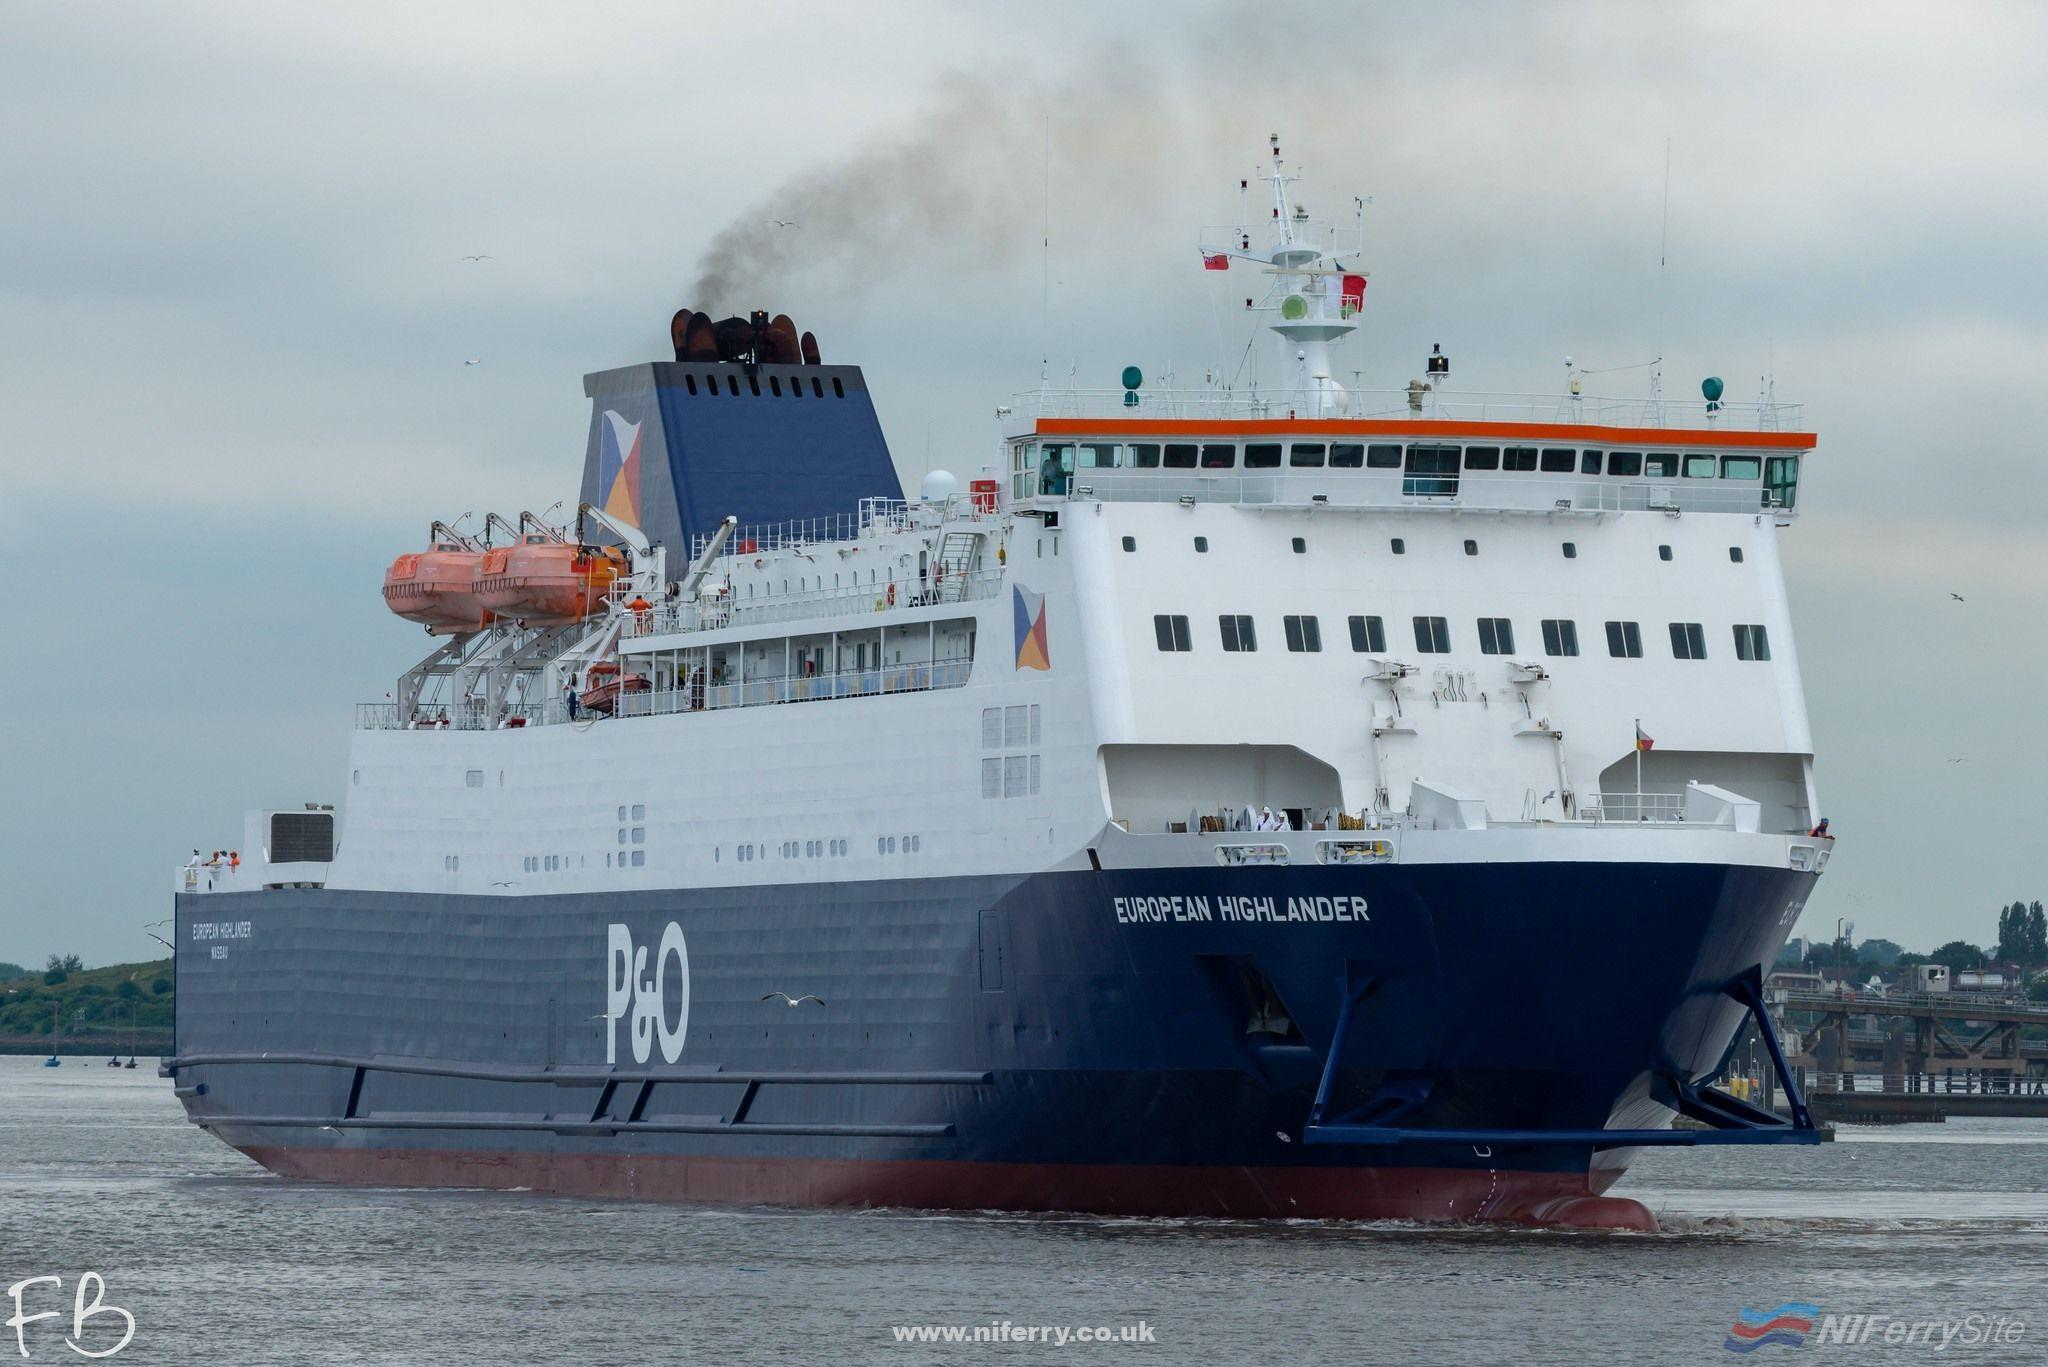 P&O Ferries EUROPEAN HIGHLANDER leaves Cammell Laird Birkenhead for Larne on the afternoon of Tuesday June 25th '19. Copyright © Christopher Triggs.